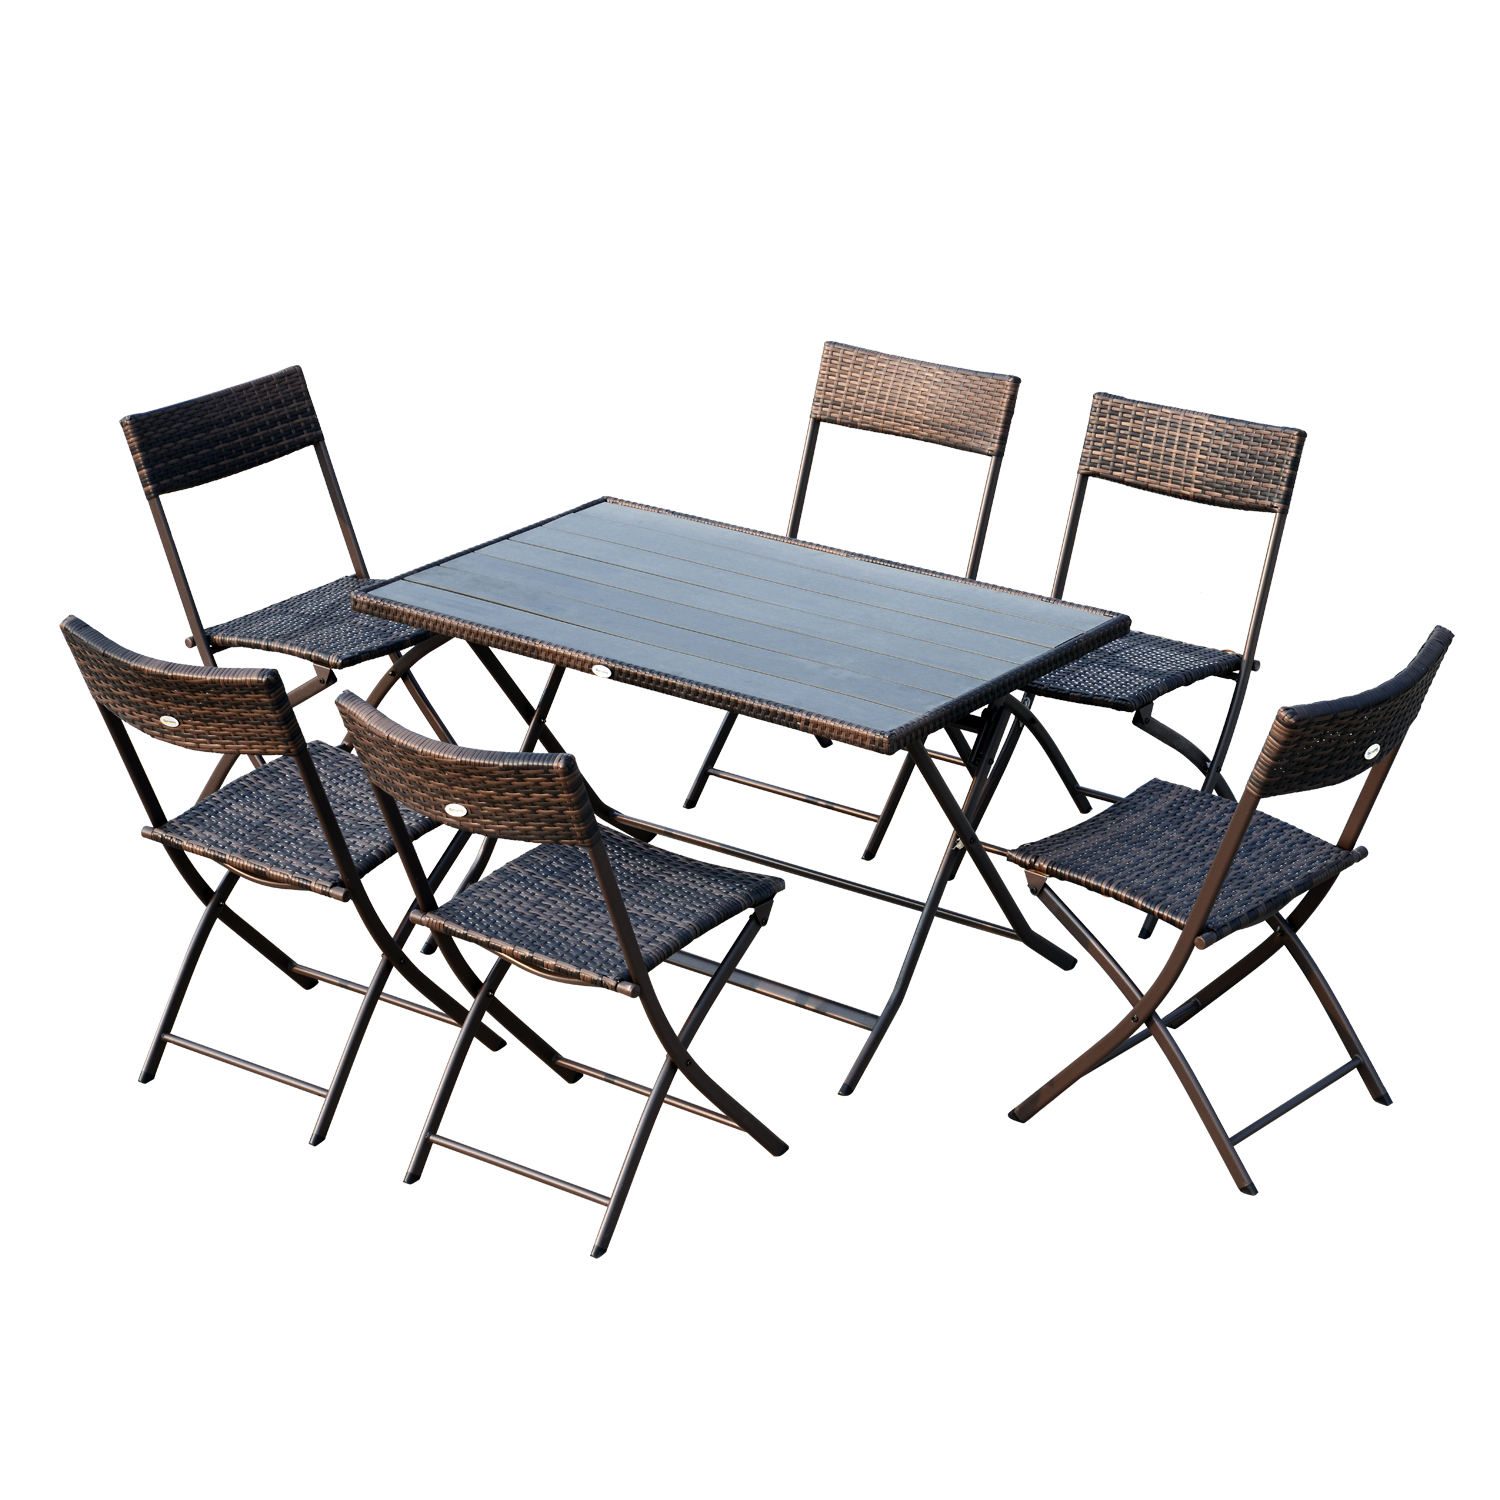 Outsunny Set 7 PCs Rattan Furniture Dining Table With 6 Chairs Garden